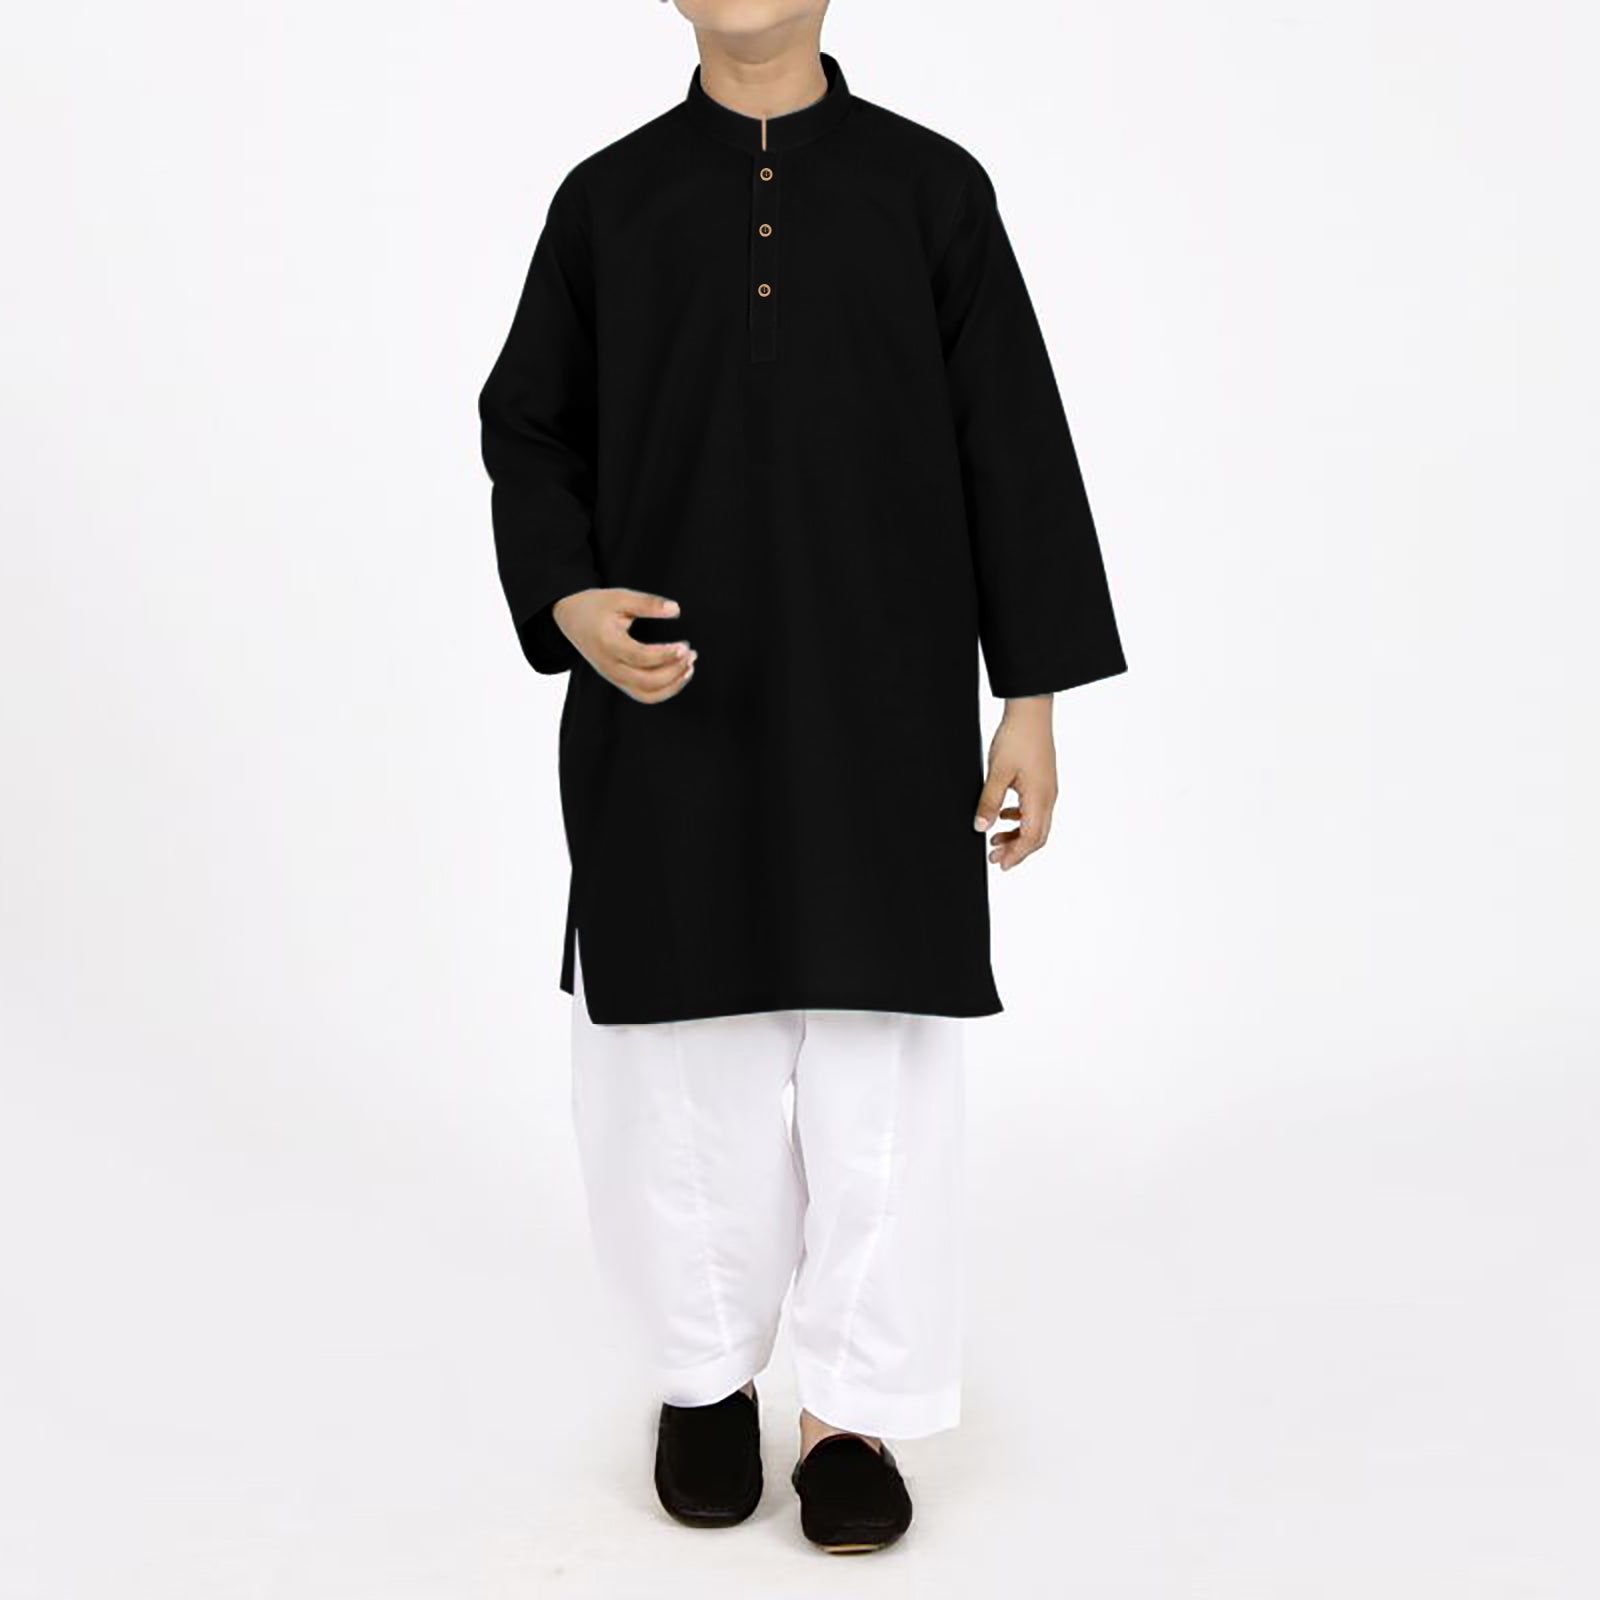 S.A Kurta Shalwar For Boys-Black & White-BE4151